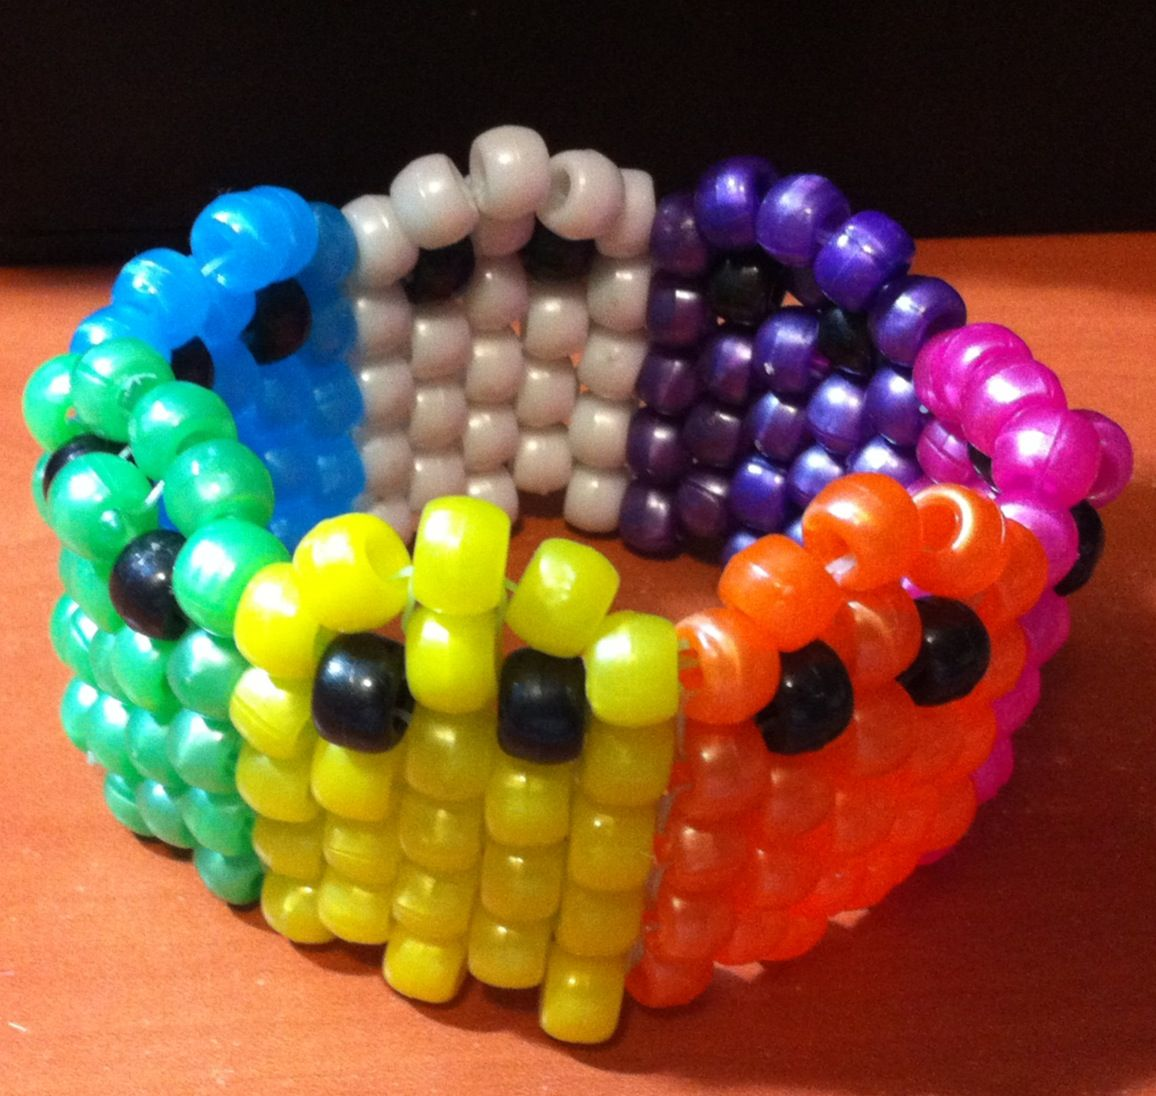 make with white beads for ghost